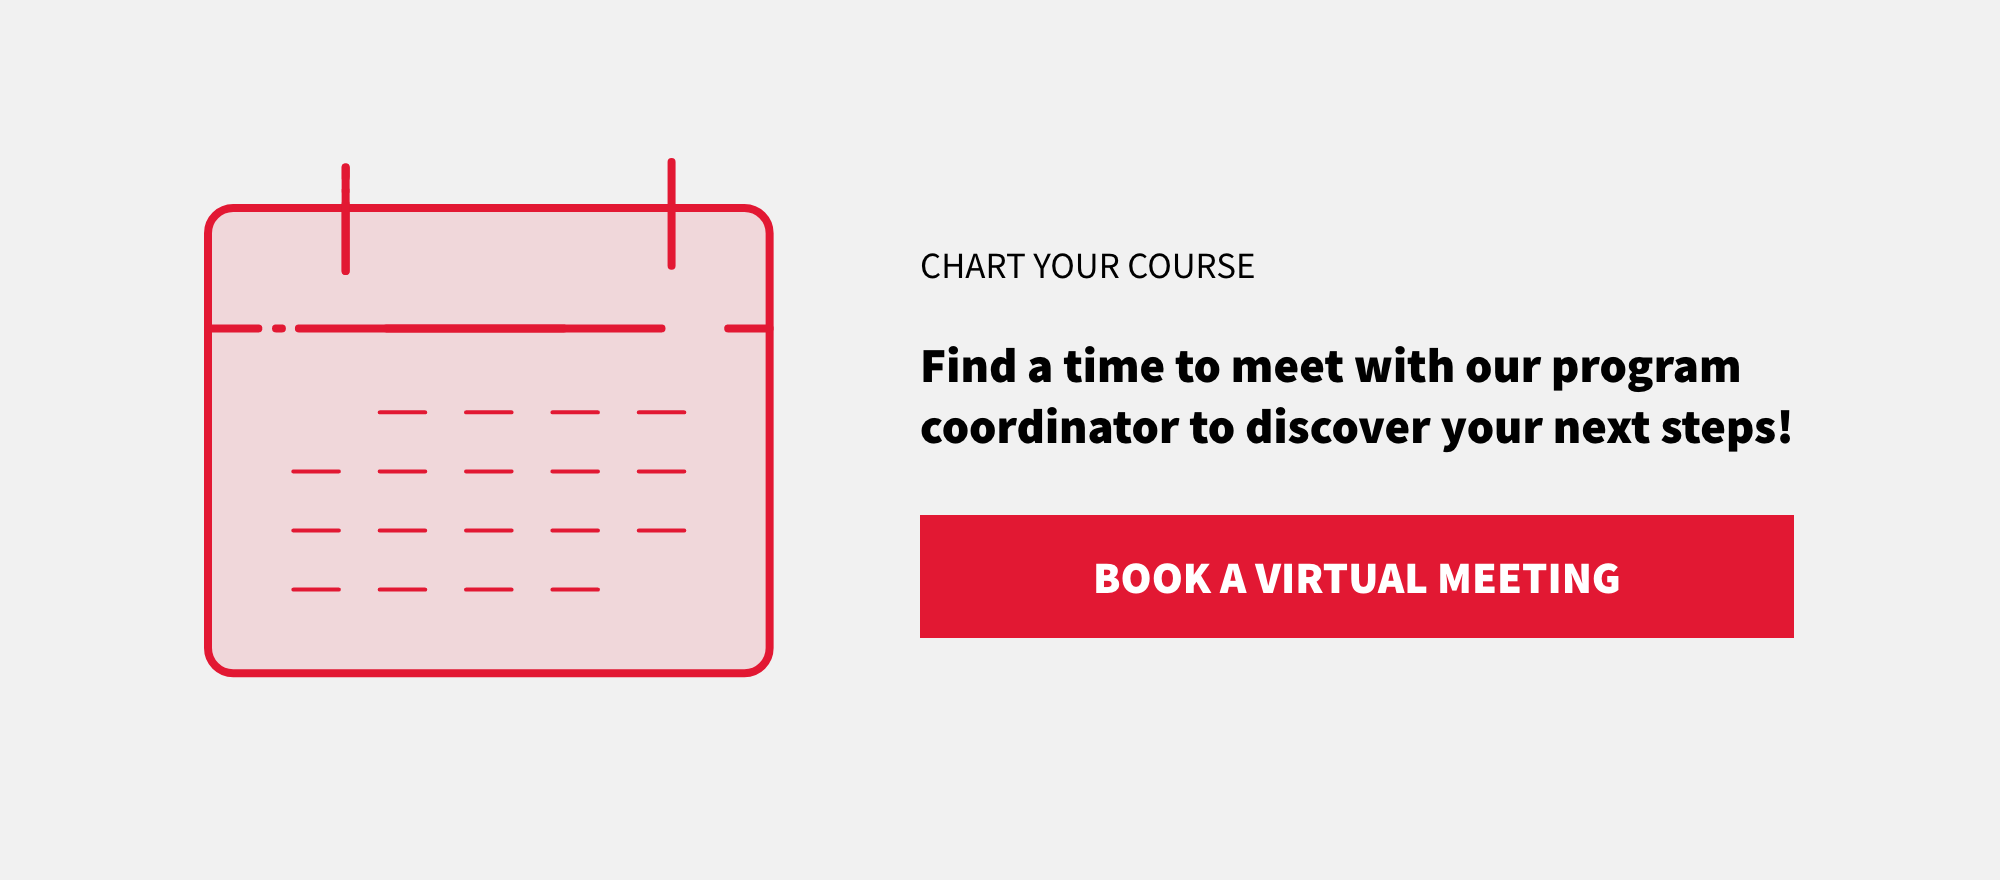 Find a time to meet with our program coordinator to discover your next steps